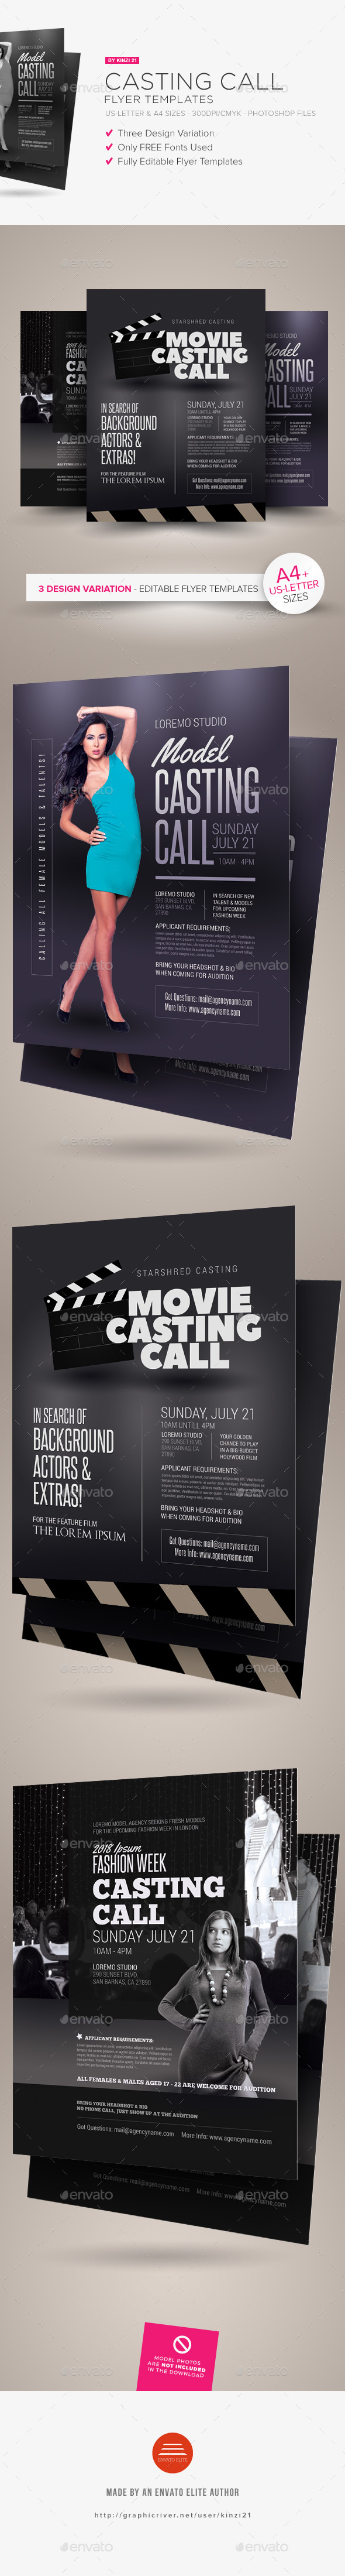 Casting call flyer templates by kinzi21 graphicriver casting call flyer templates miscellaneous events pronofoot35fo Choice Image